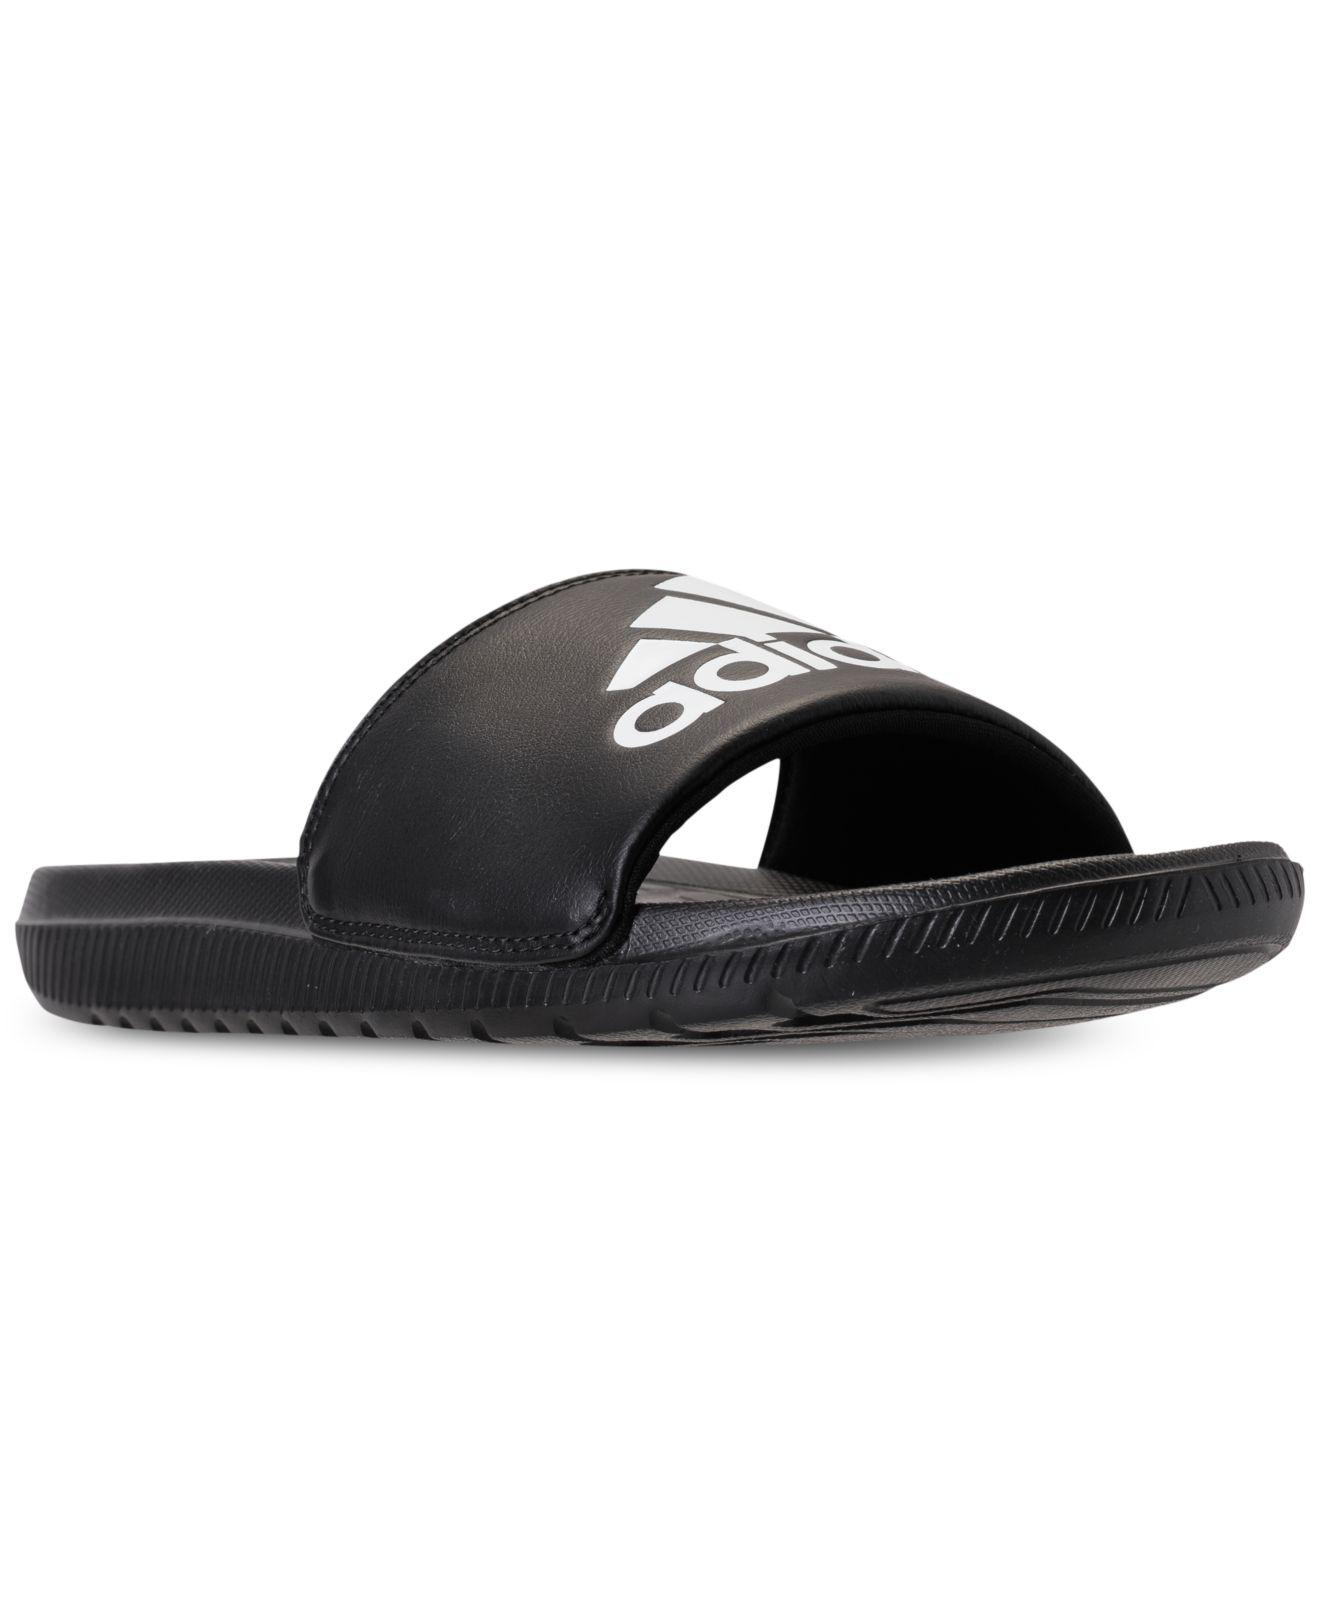 d8f026edd9d6 Lyst - adidas Voloomix Slide Sandals From Finish Line in Black for ...